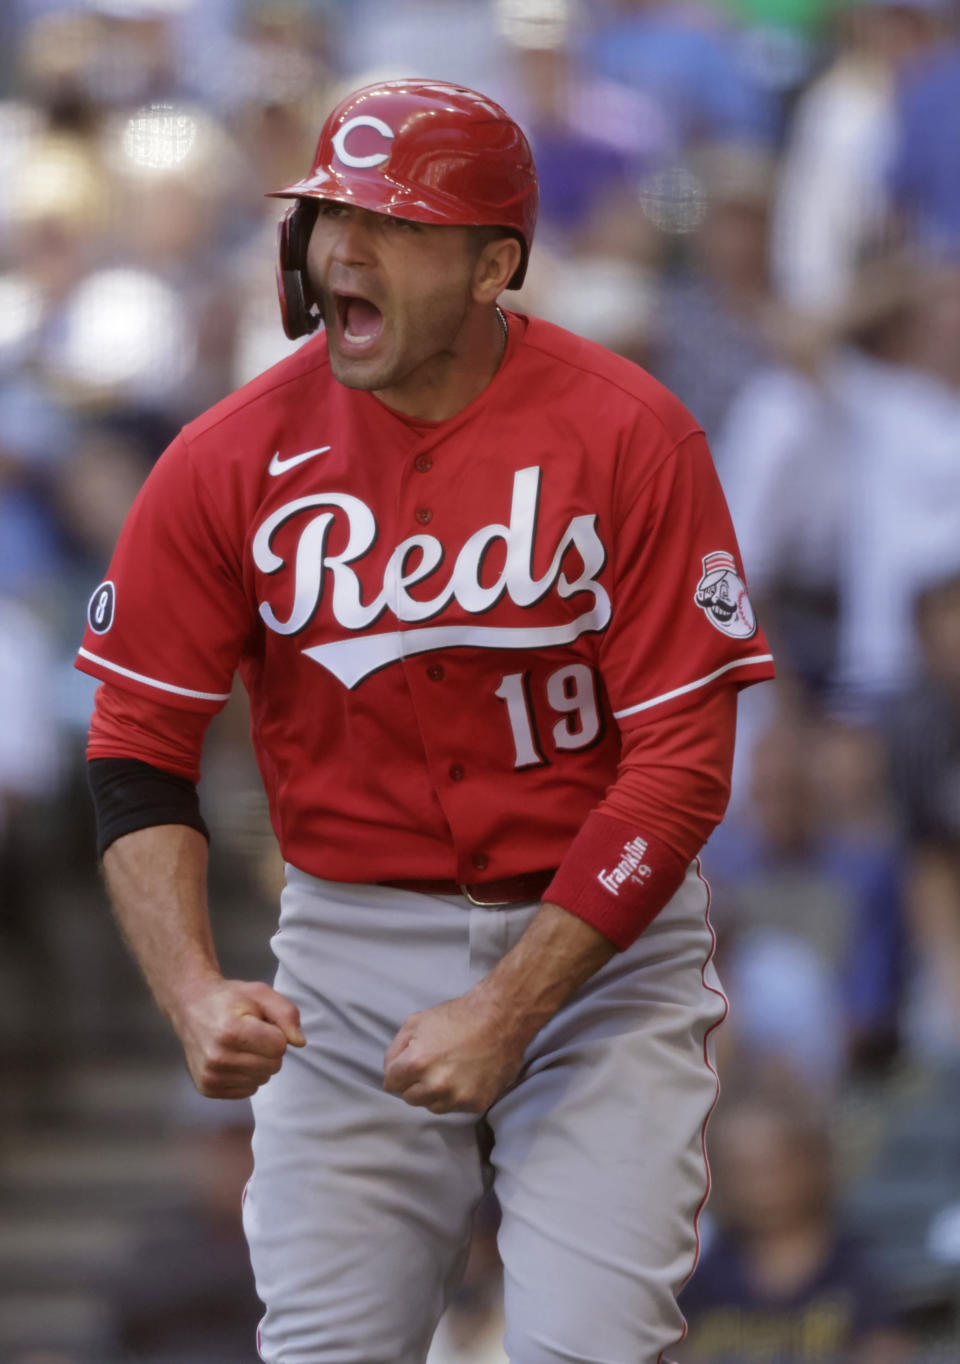 Cincinnati Reds first baseman Joey Votto (19) reacts after scoring during the seventh inning of a baseball game against the Milwaukee Brewers Wednesday, June 16, 2021, in Milwaukee. (AP Photo/Jeffrey Phelps)